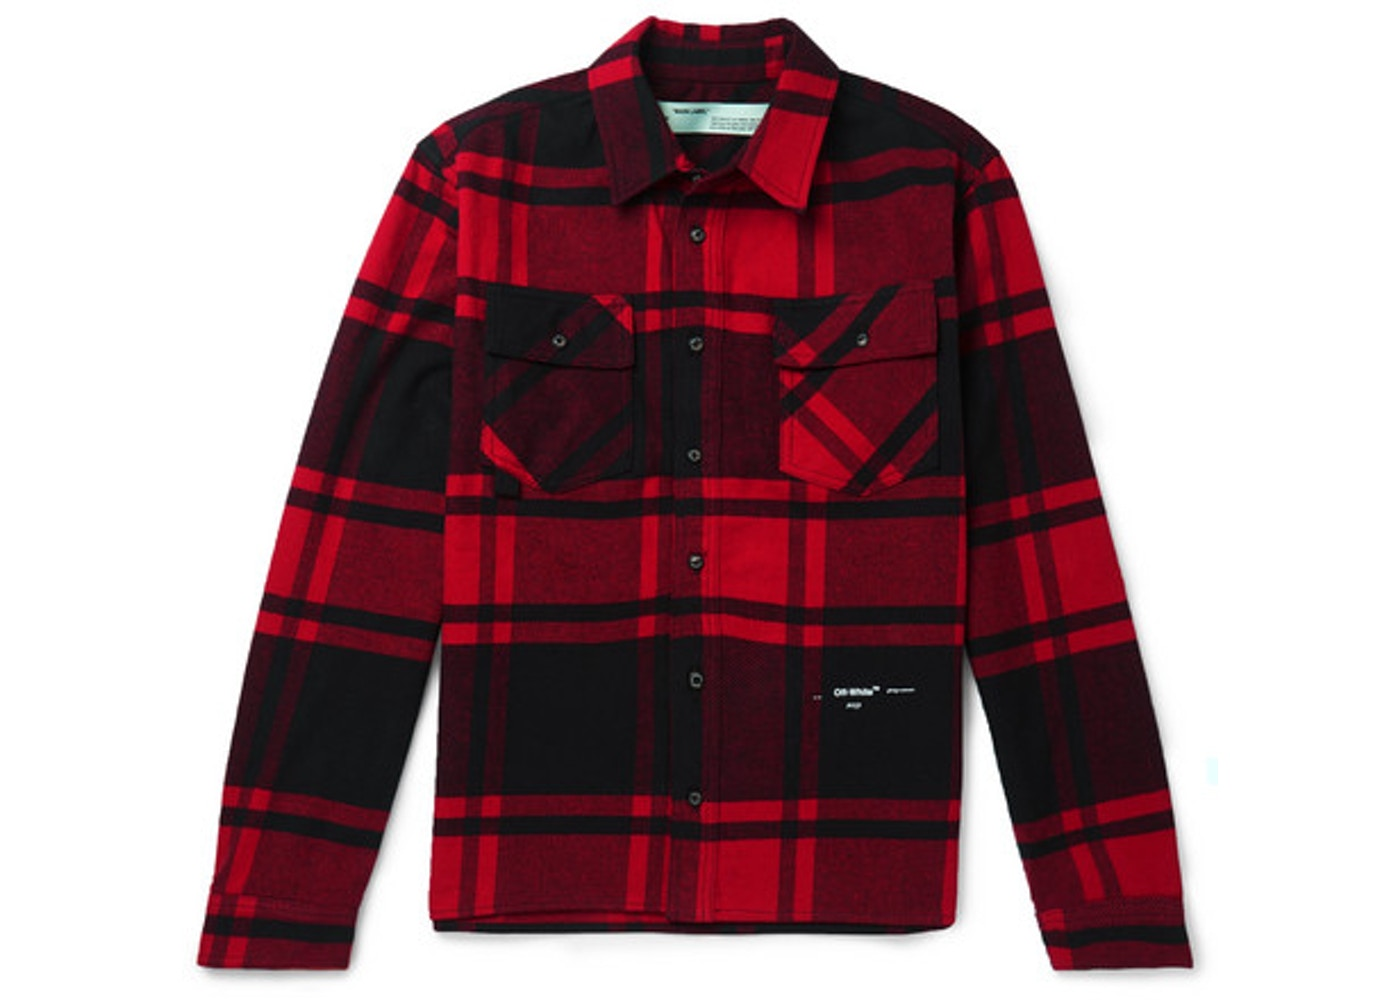 82dbe005 OFF-WHITE Embellished Checkered Flannel Shirt Black/Red/White. Embellished  Checkered Flannel